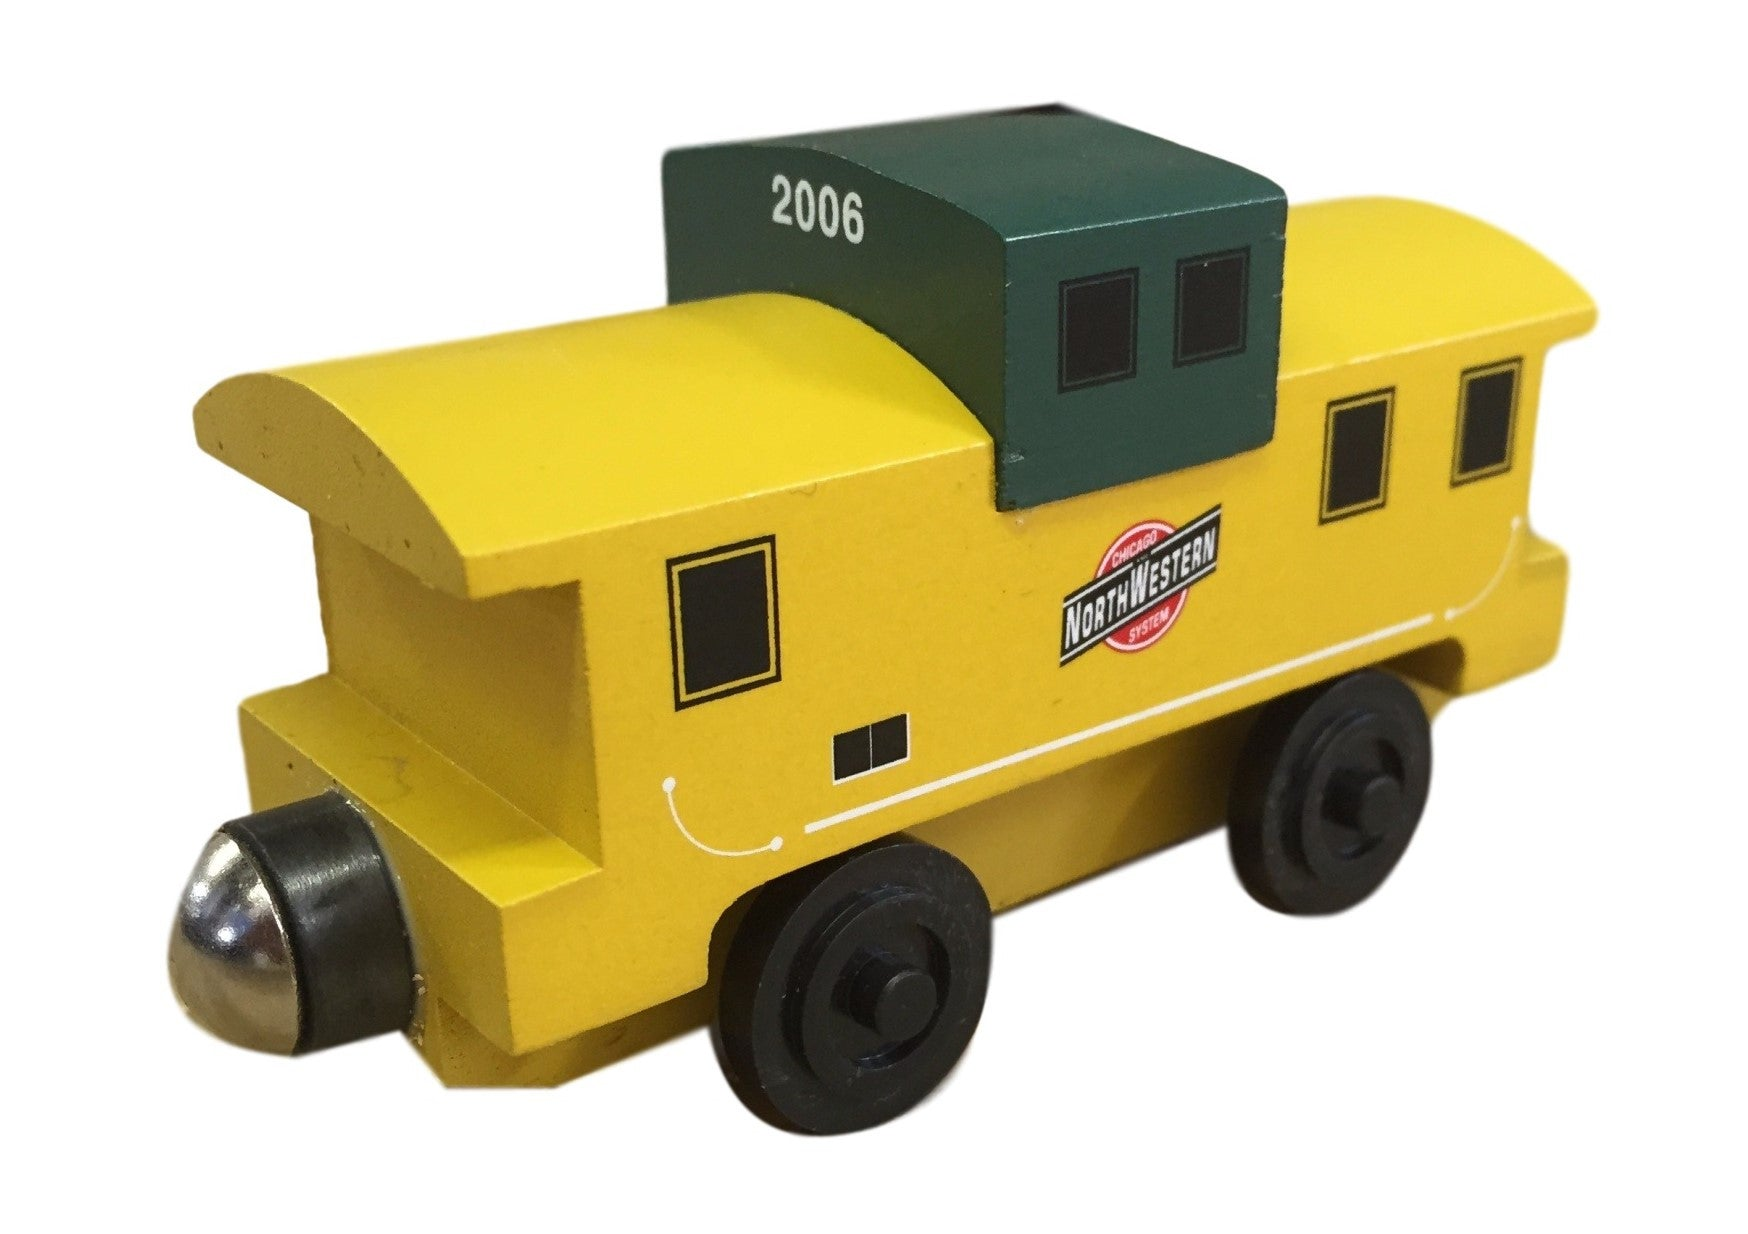 Whittle Shortline Railroad Chicago and Northwestern Caboose Wooden Toy Train